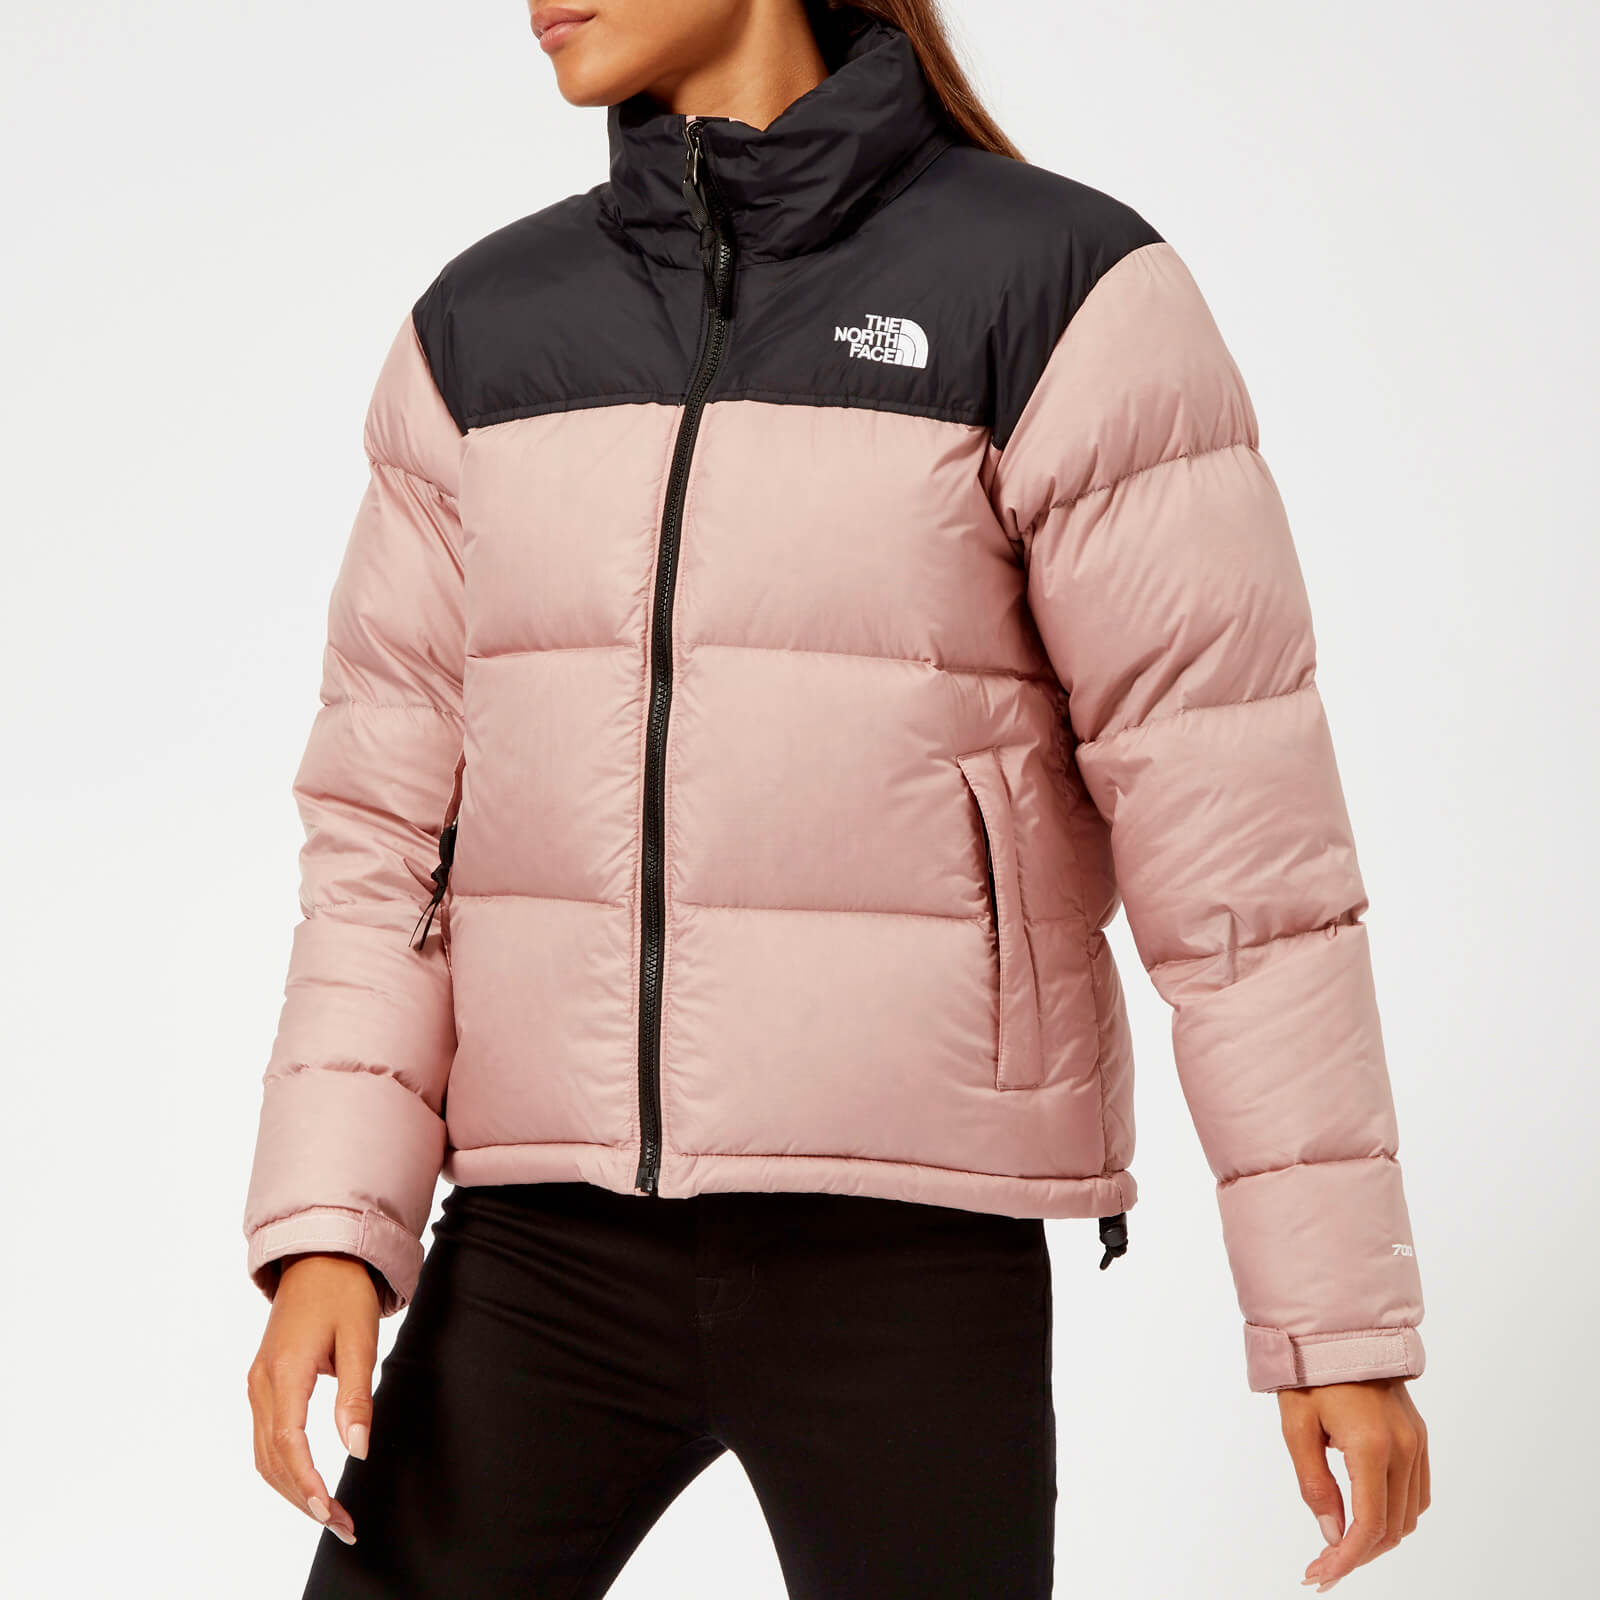 The North Face Women's 1996 Retro Nuptse Jacket Misty Rose